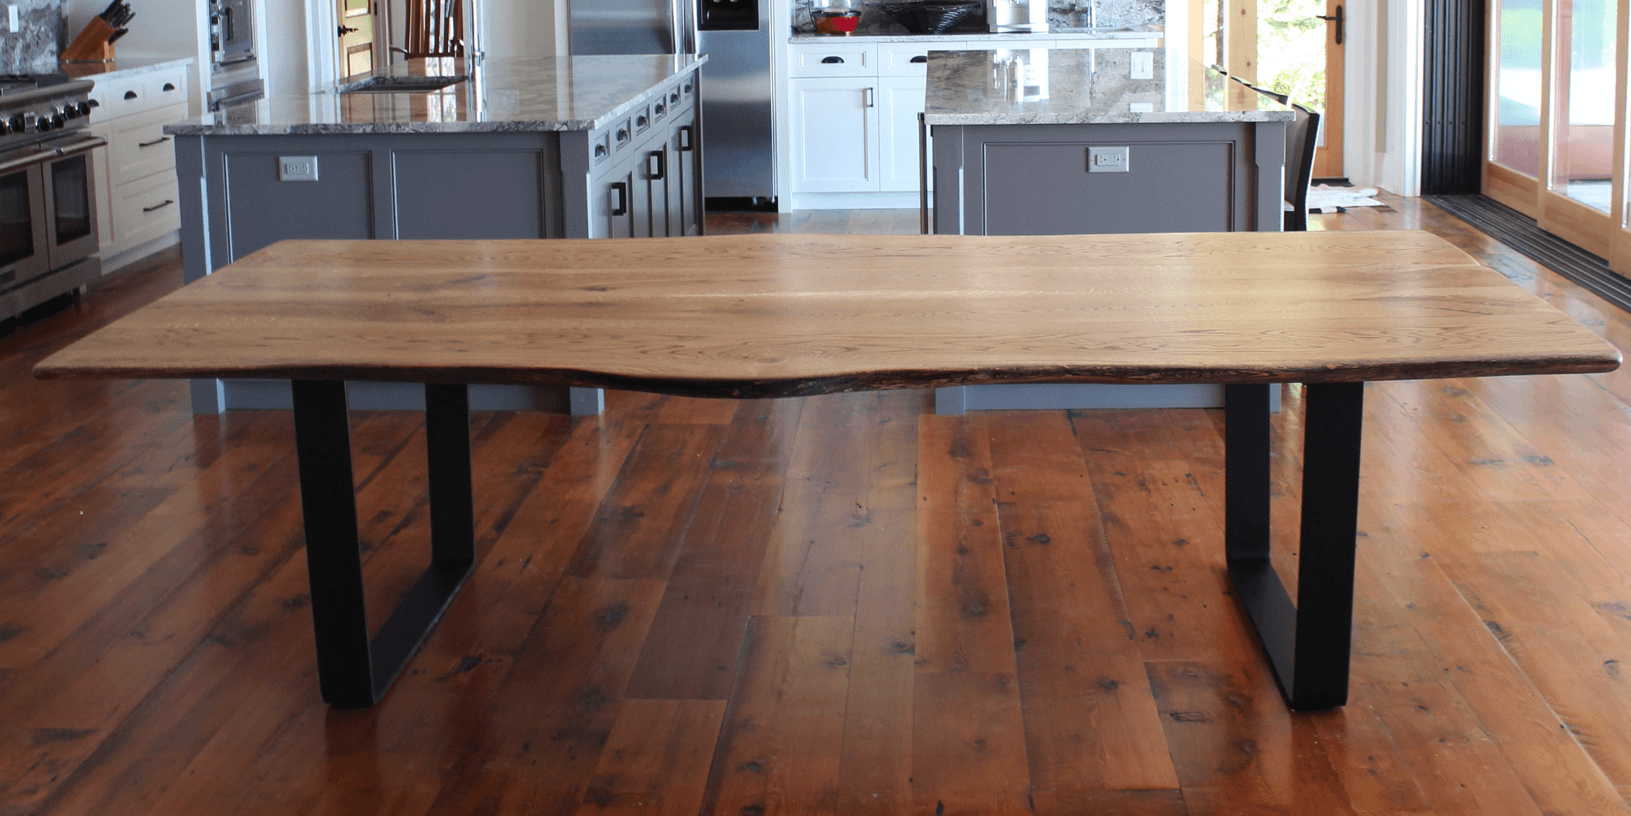 Most Recently Released Walnut Finish Live Edge Wood Contemporary Dining Tables Within Home – Living Wood Design Toronto & Muskoka Ontario Canada (View 8 of 30)